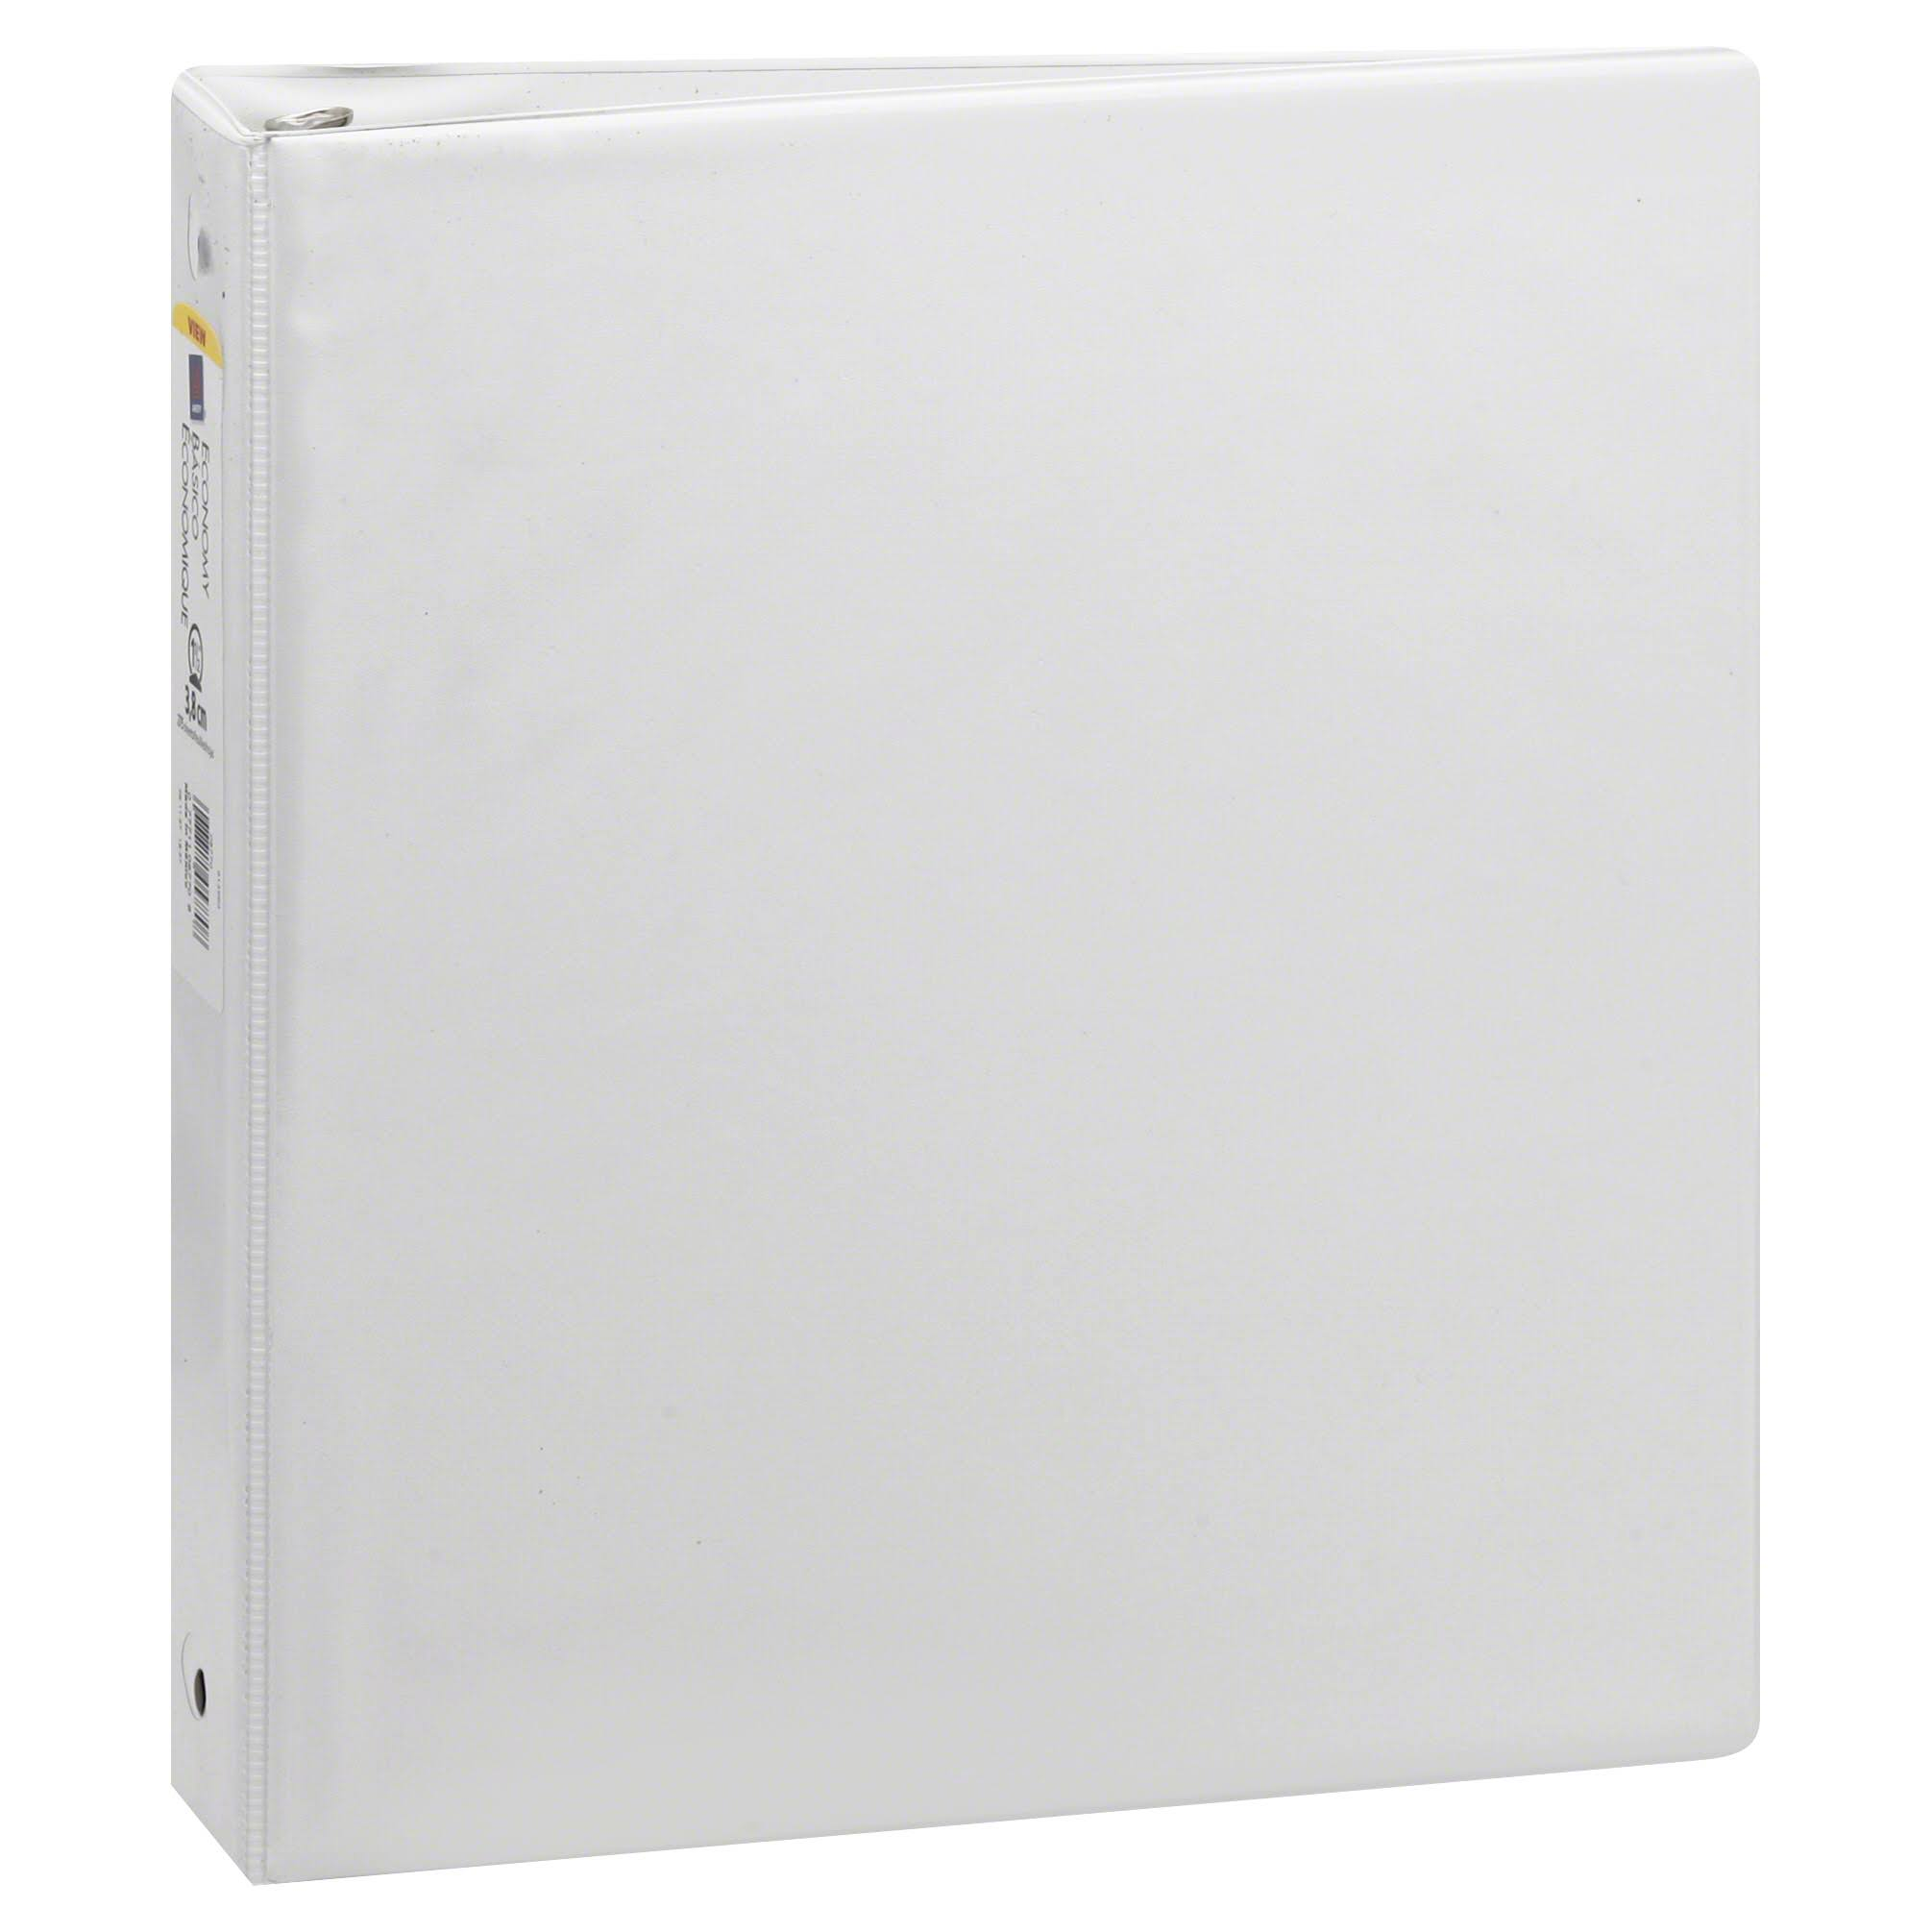 "Avery Economy View Binder - White, With 1.5"" Round Ring"